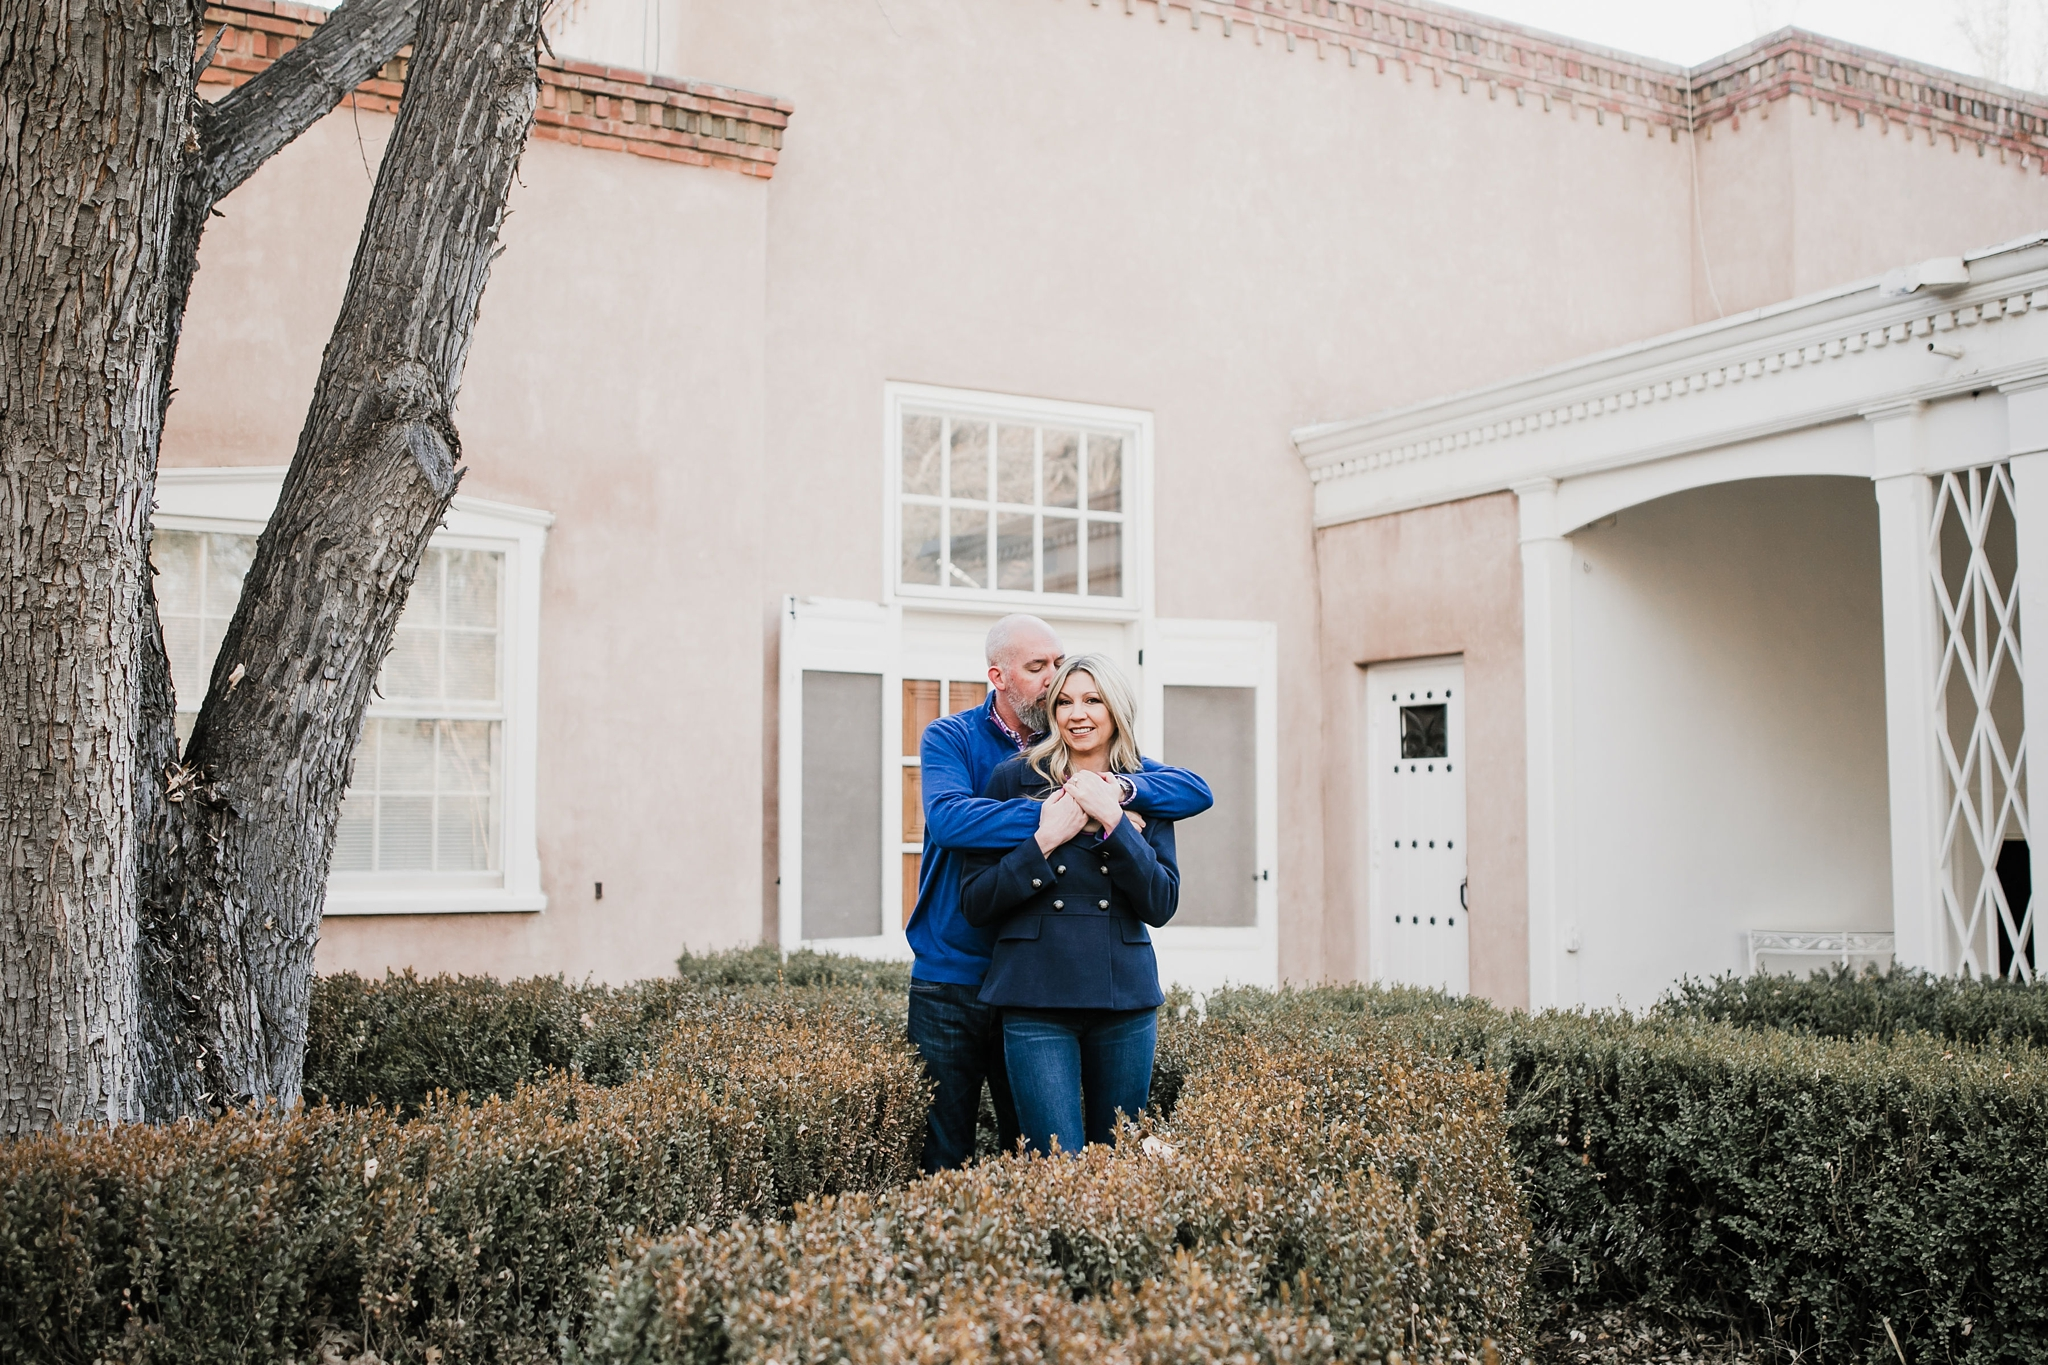 Alicia+lucia+photography+-+albuquerque+wedding+photographer+-+santa+fe+wedding+photography+-+new+mexico+wedding+photographer+-+new+mexico+engagement+-+los+poblanos+engagement_0009.jpg